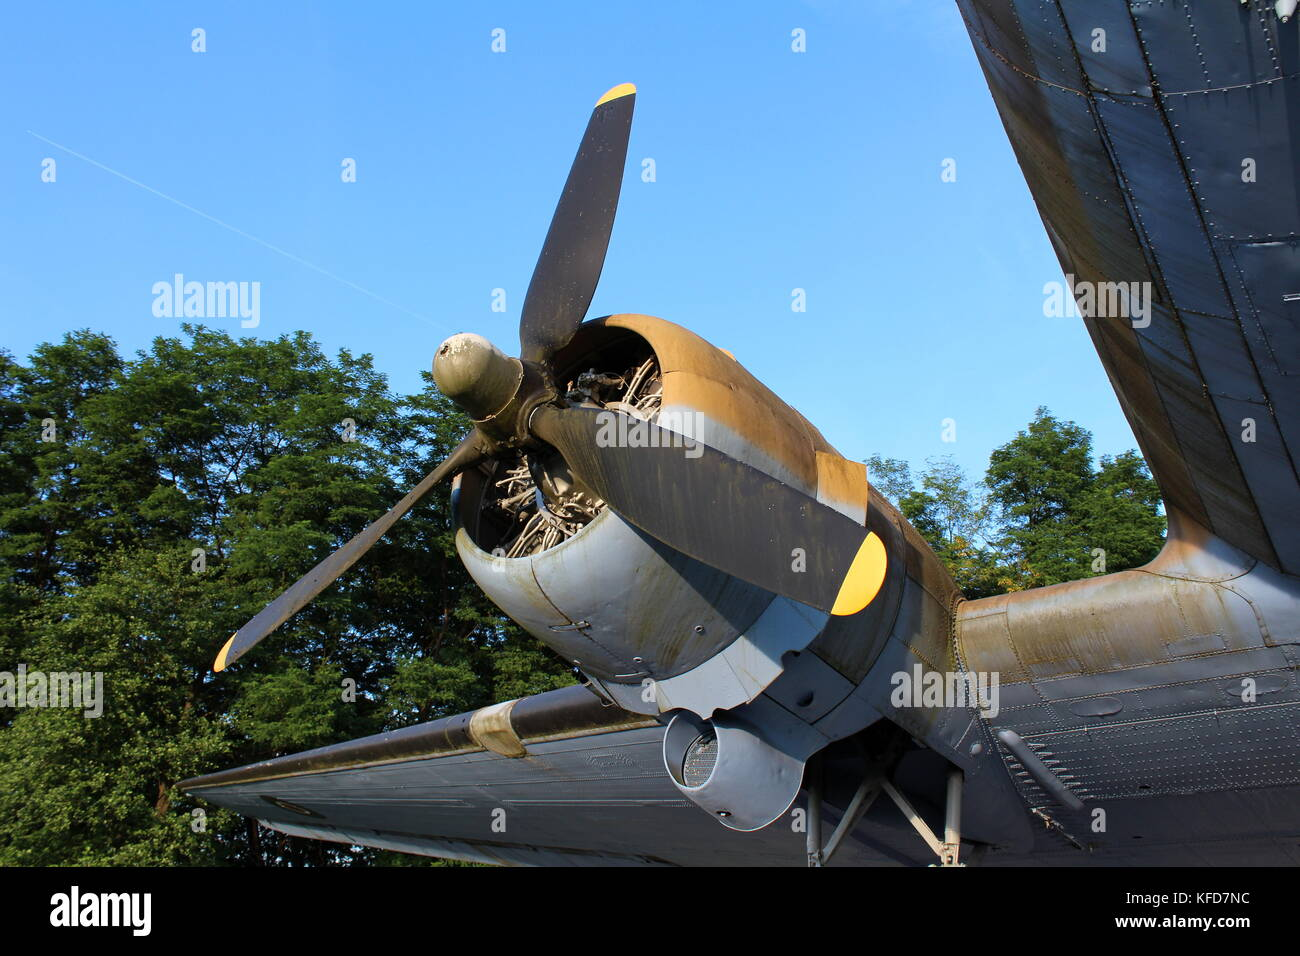 Rotary engine of Douglas Dakota DC-3 C-47 WWII plane exhibit situated in local forest and available for visiting - Stock Image